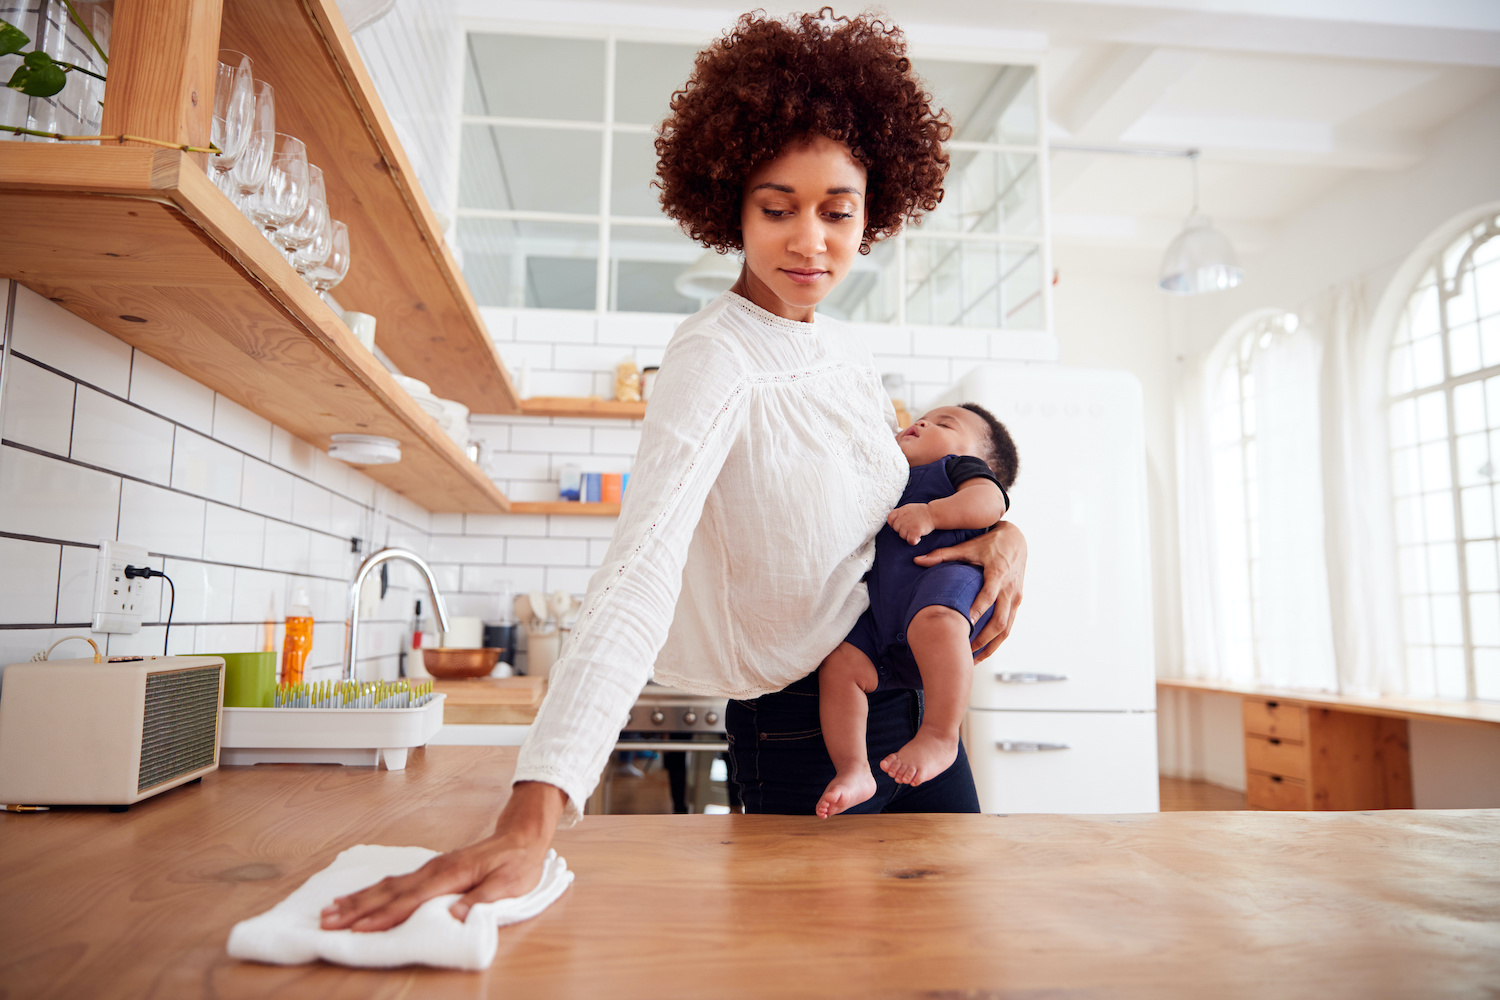 Parenting To The Best Of Our Abilities Despite Our Surroundings